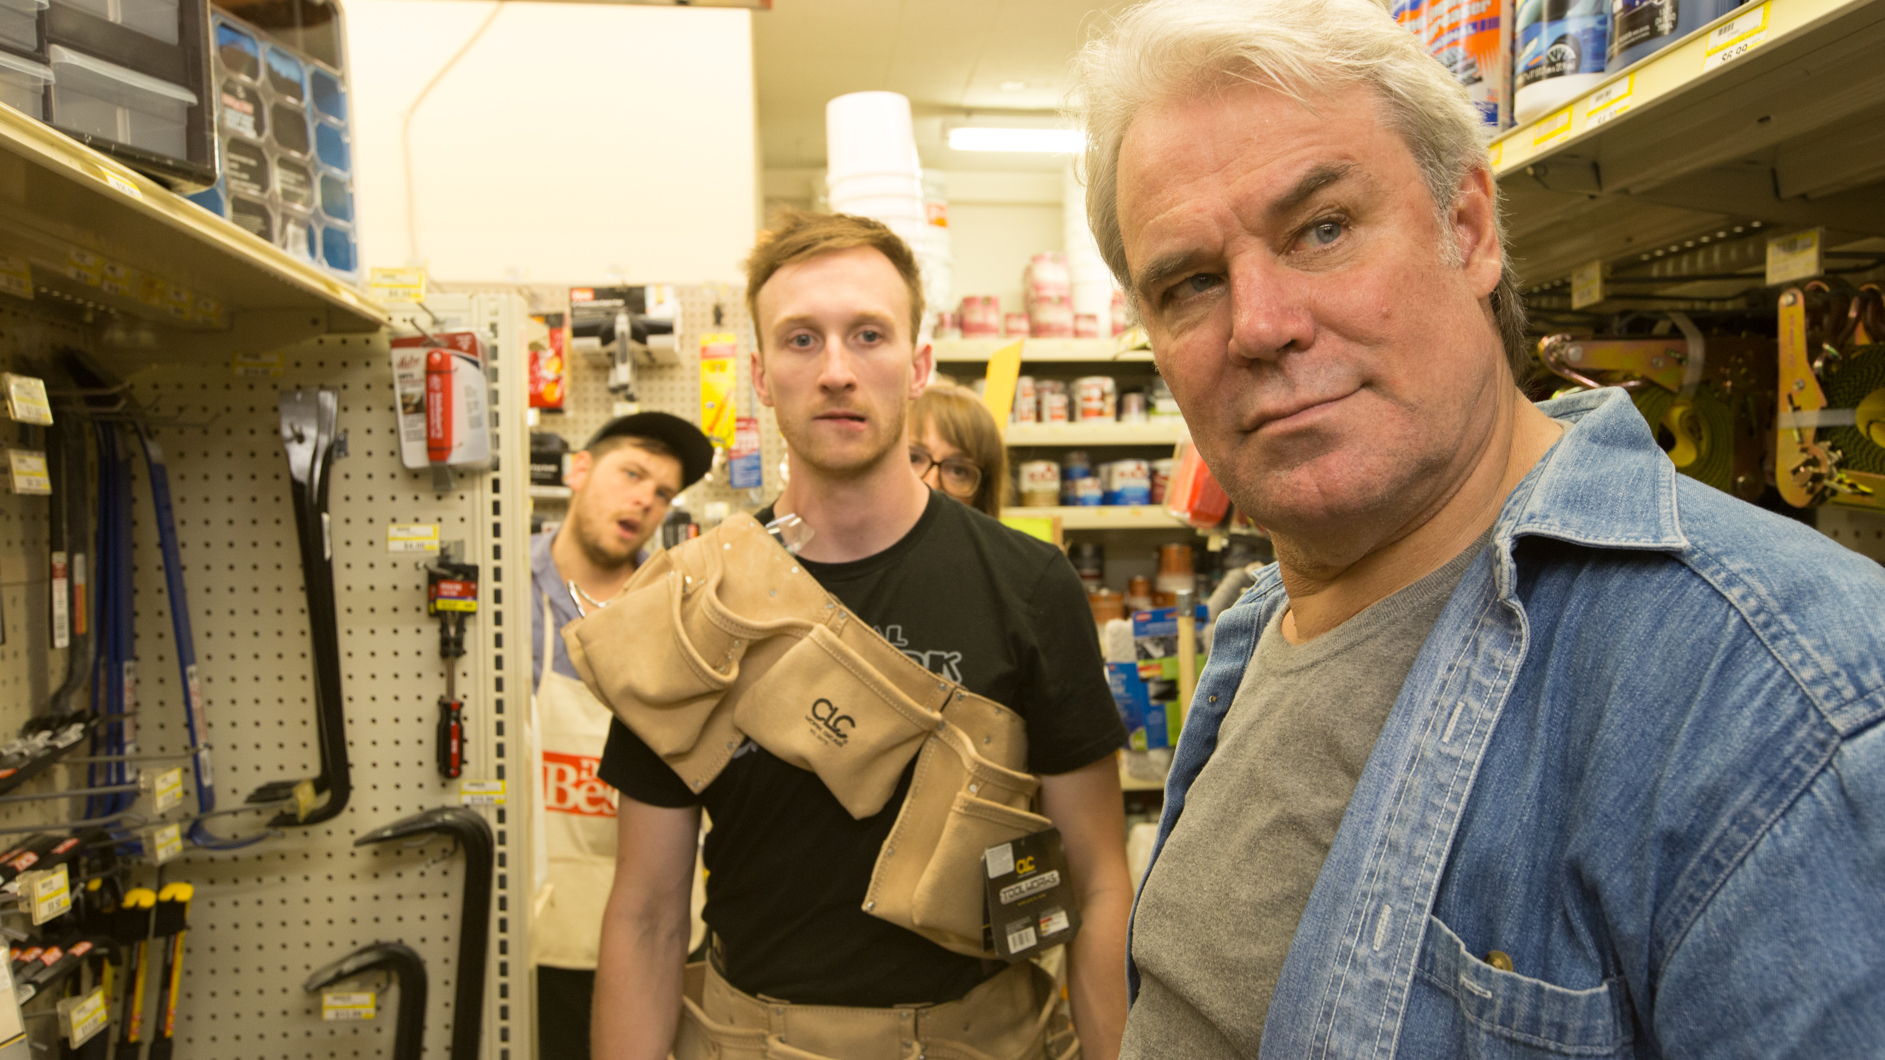 """Training Wheels comedy series funny humor live comedian Portland Aaron Ross """"who's the ross?"""" talk show web series local indie Oregon father son hardware store"""